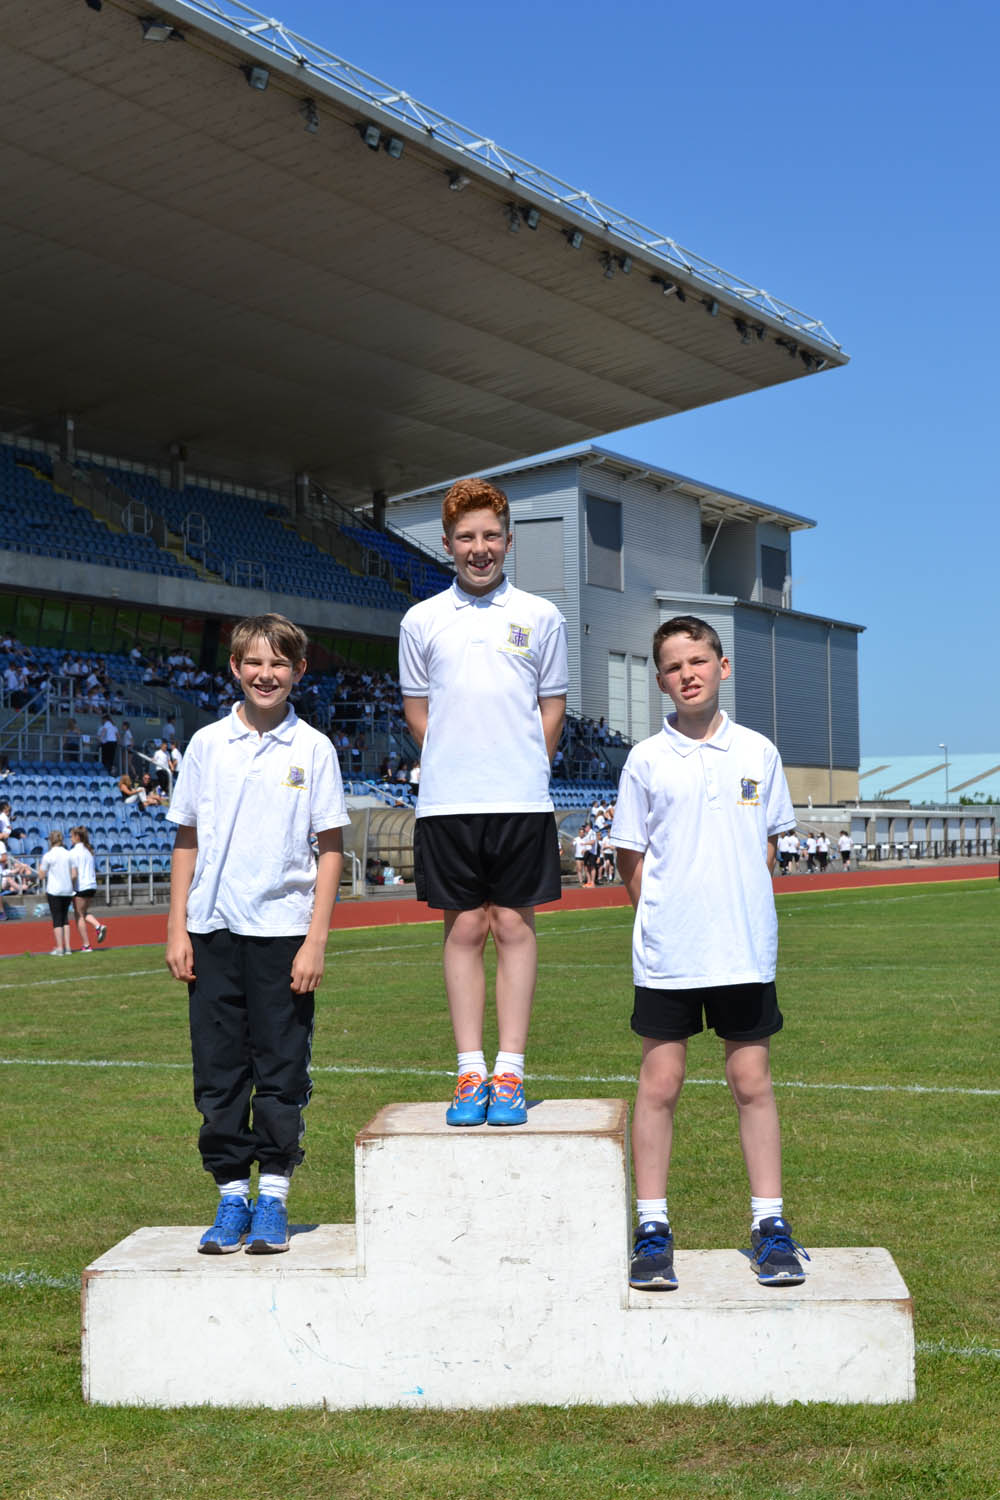 Year 7 Boys Javelin